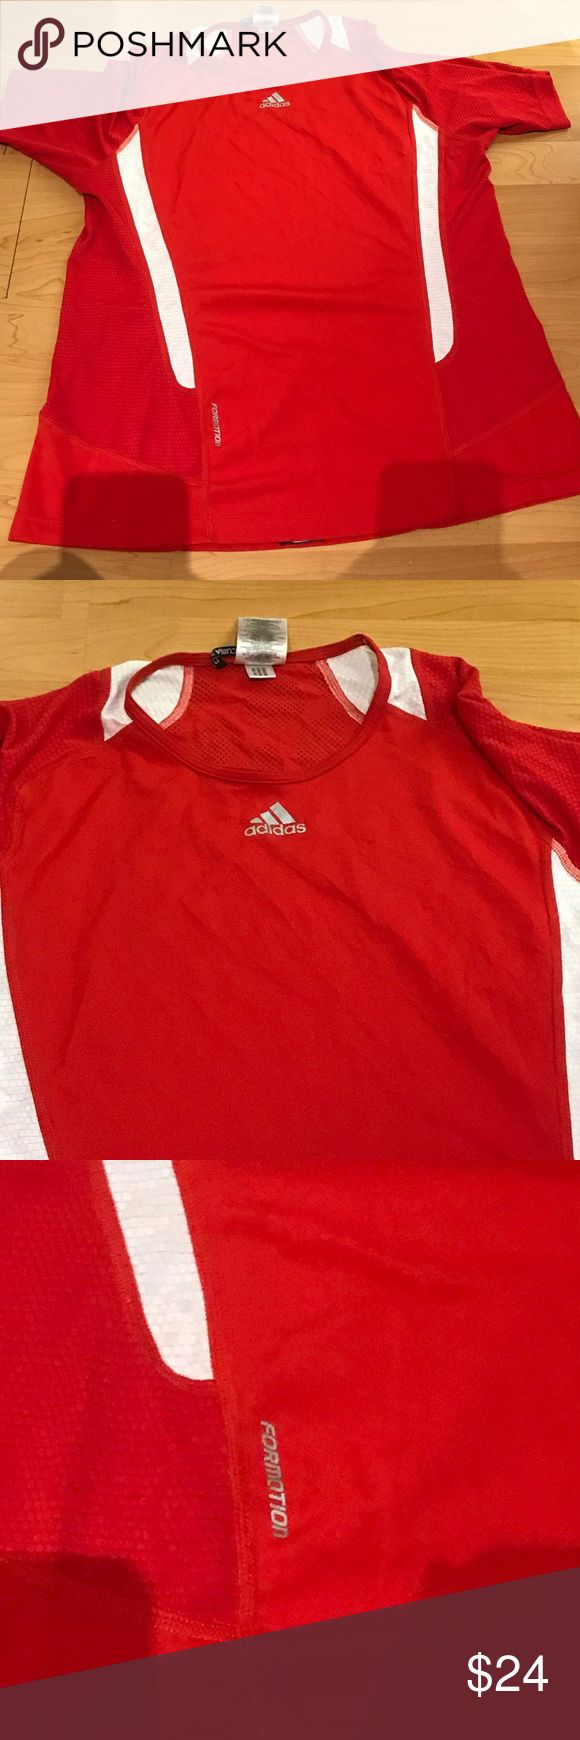 Adidas workout shirt Red adidas workout top in great condition. Great for soccer or running adidas Shirts Tees - Short Sleeve